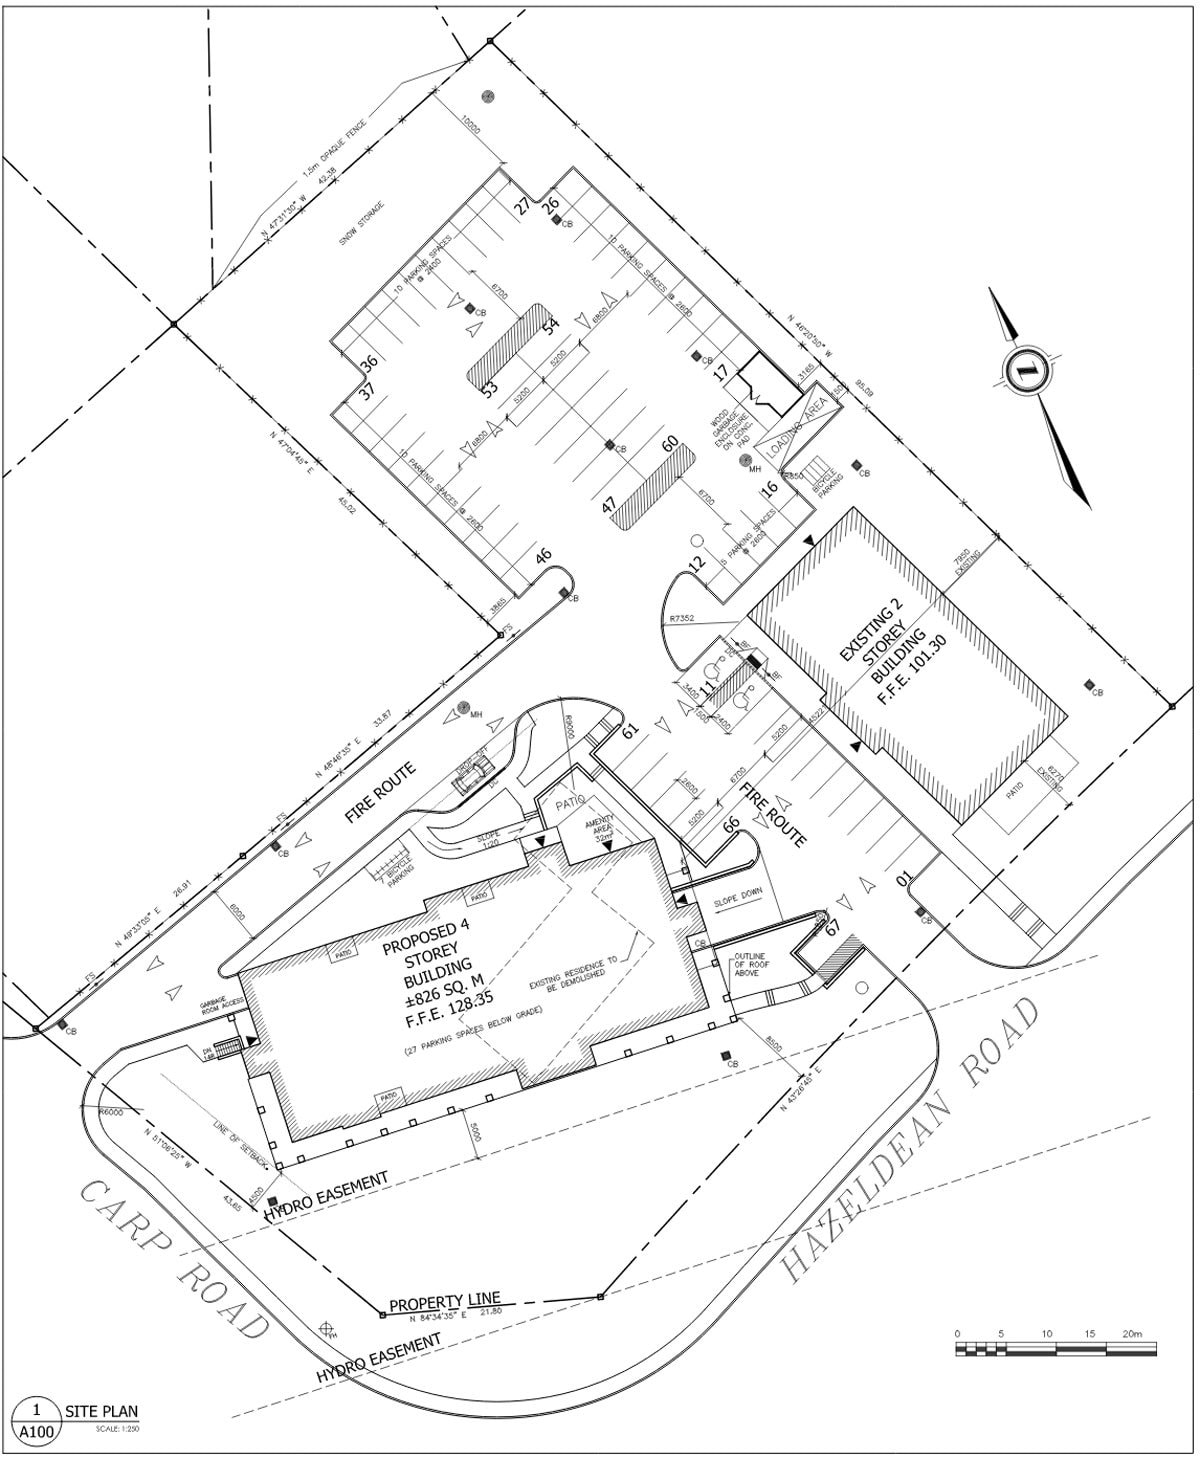 Proposed site plan for 1145 Carp Road (December 2018)